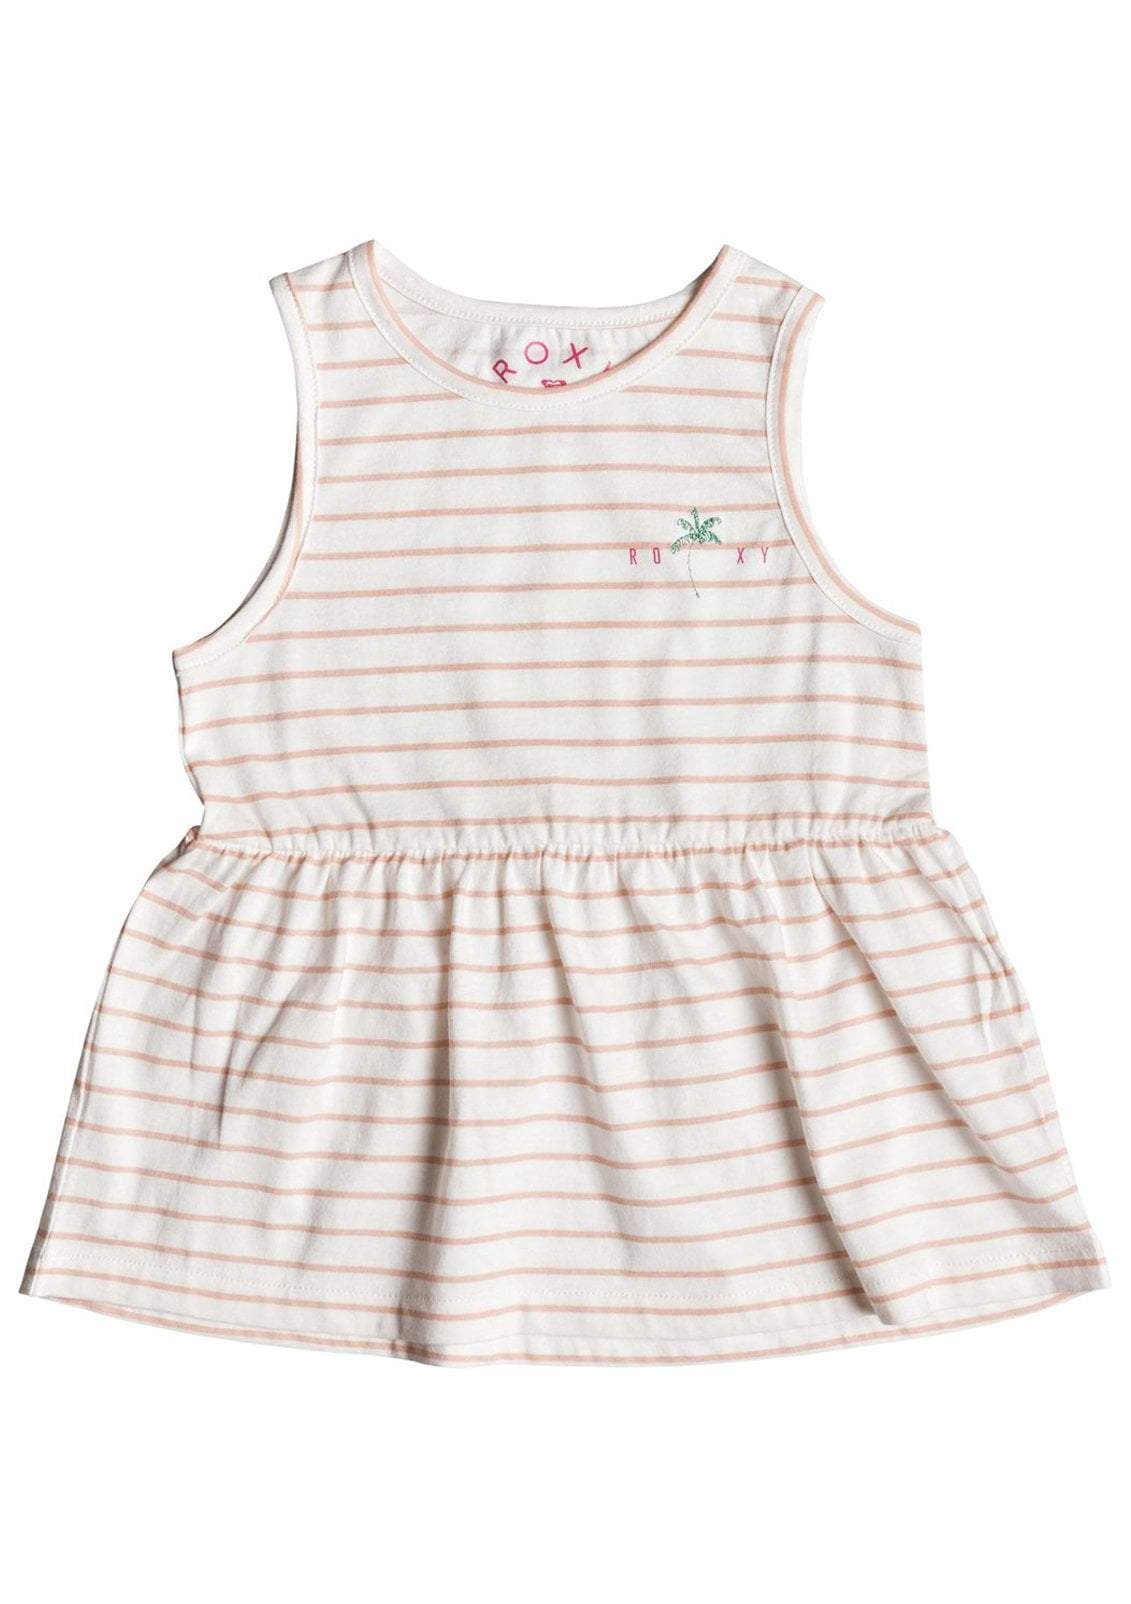 Little Girl's Good Evening Palm Tank Top